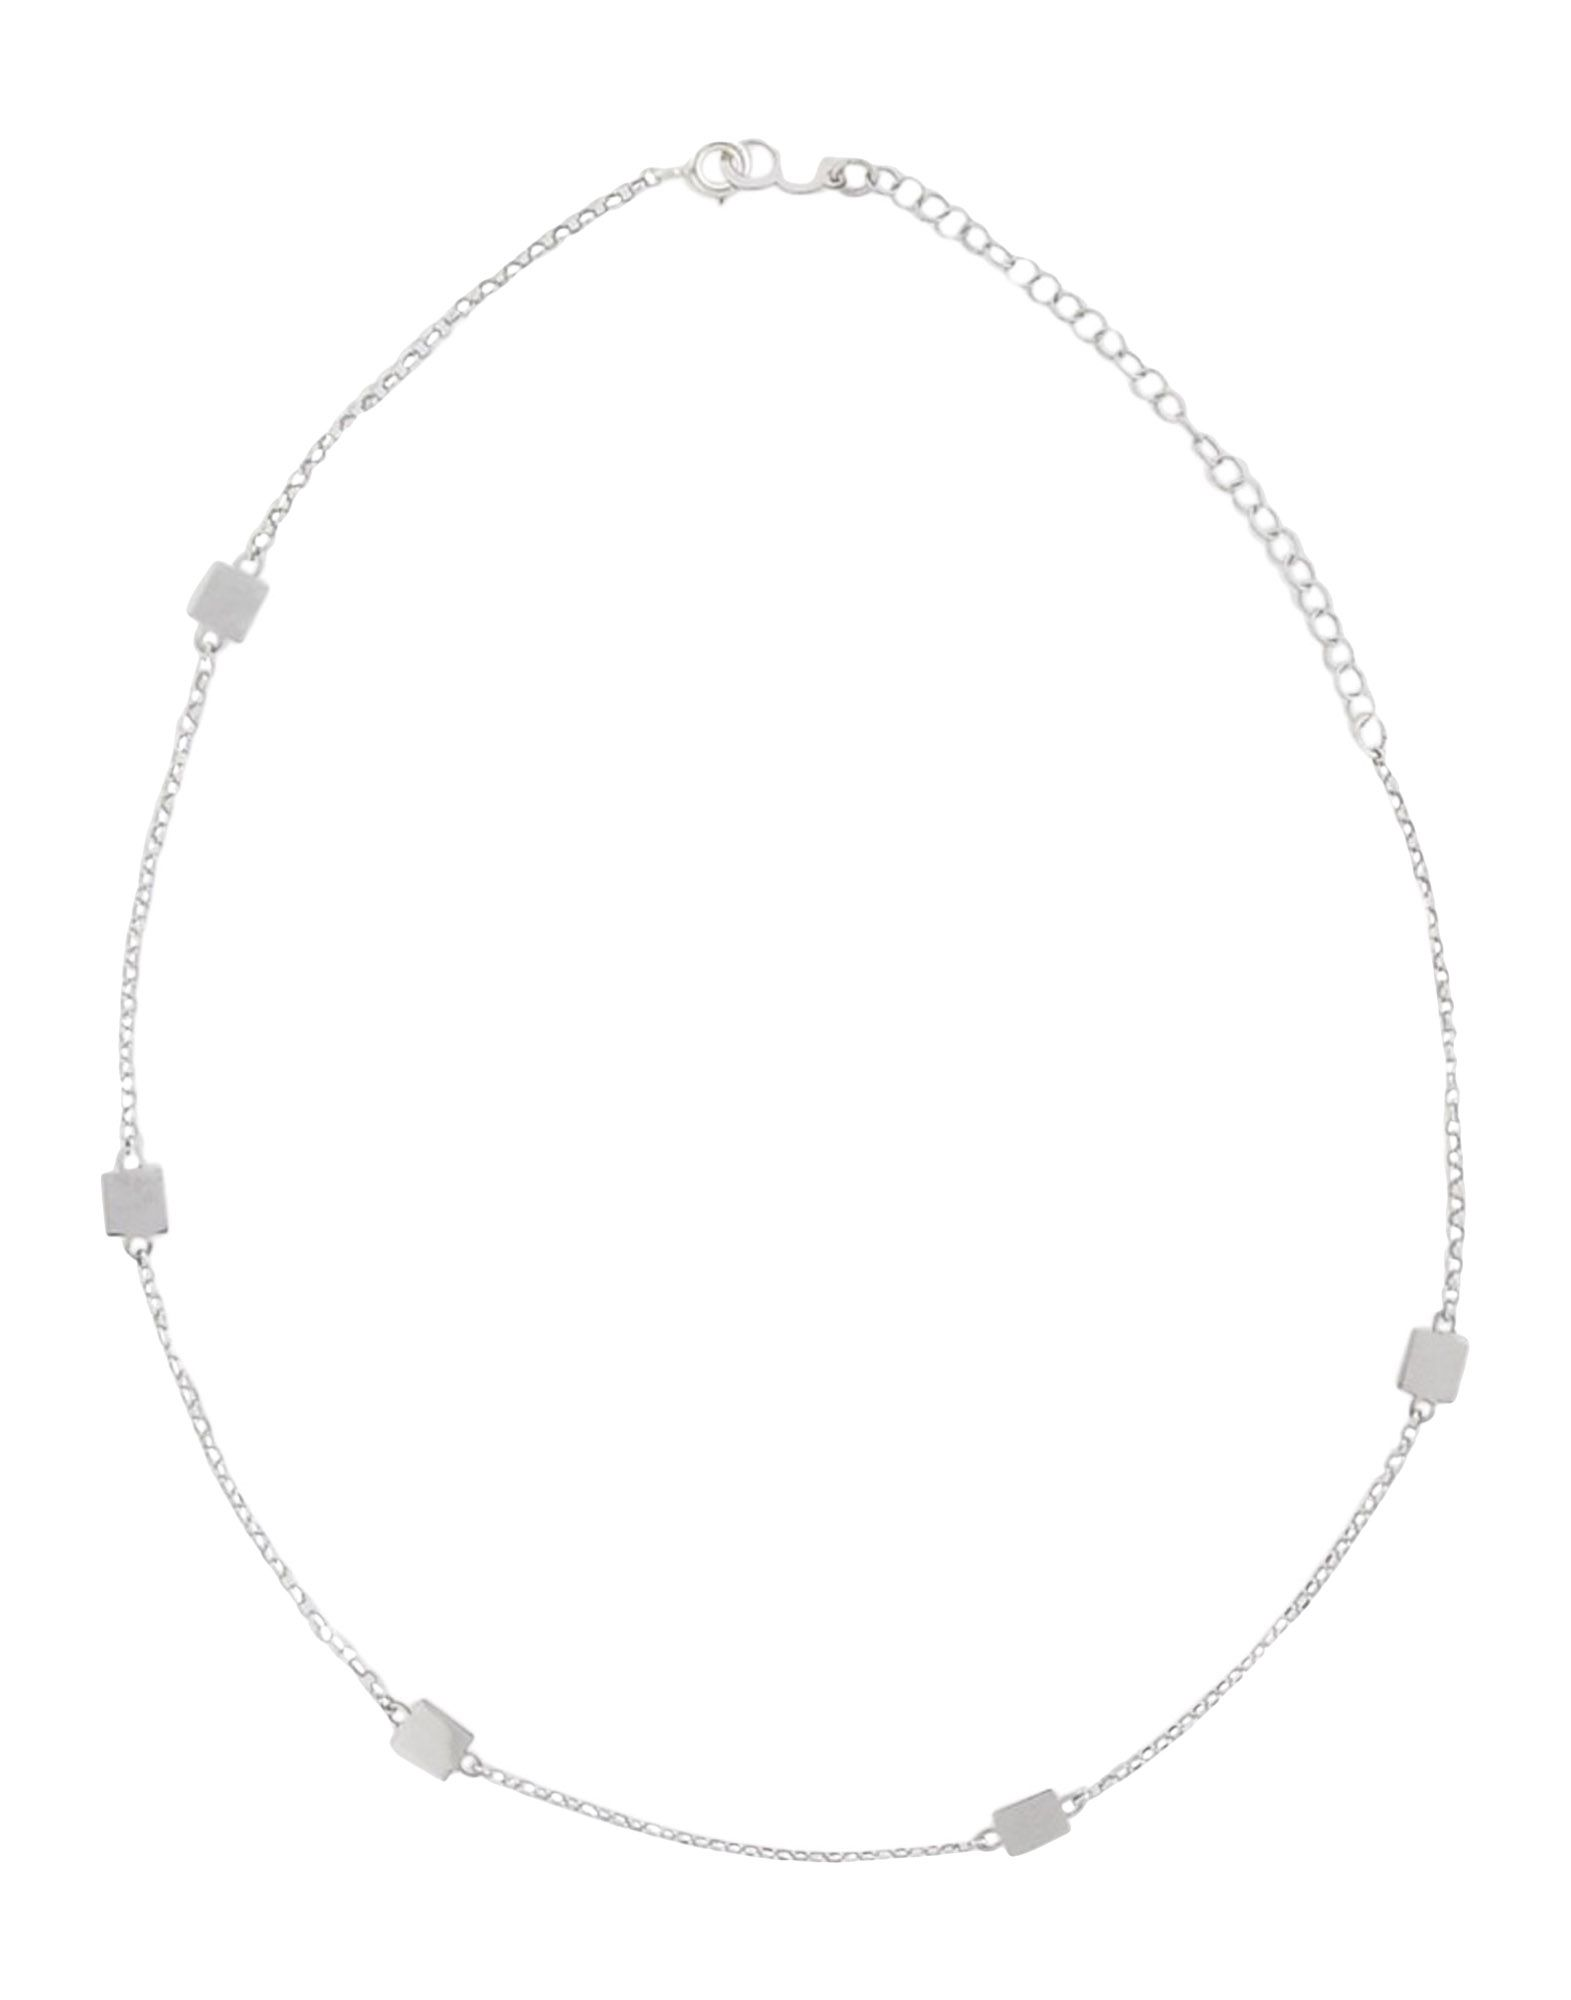 FIRST PEOPLE FIRST レディース ネックレス CHOKER SQUARE シルバー